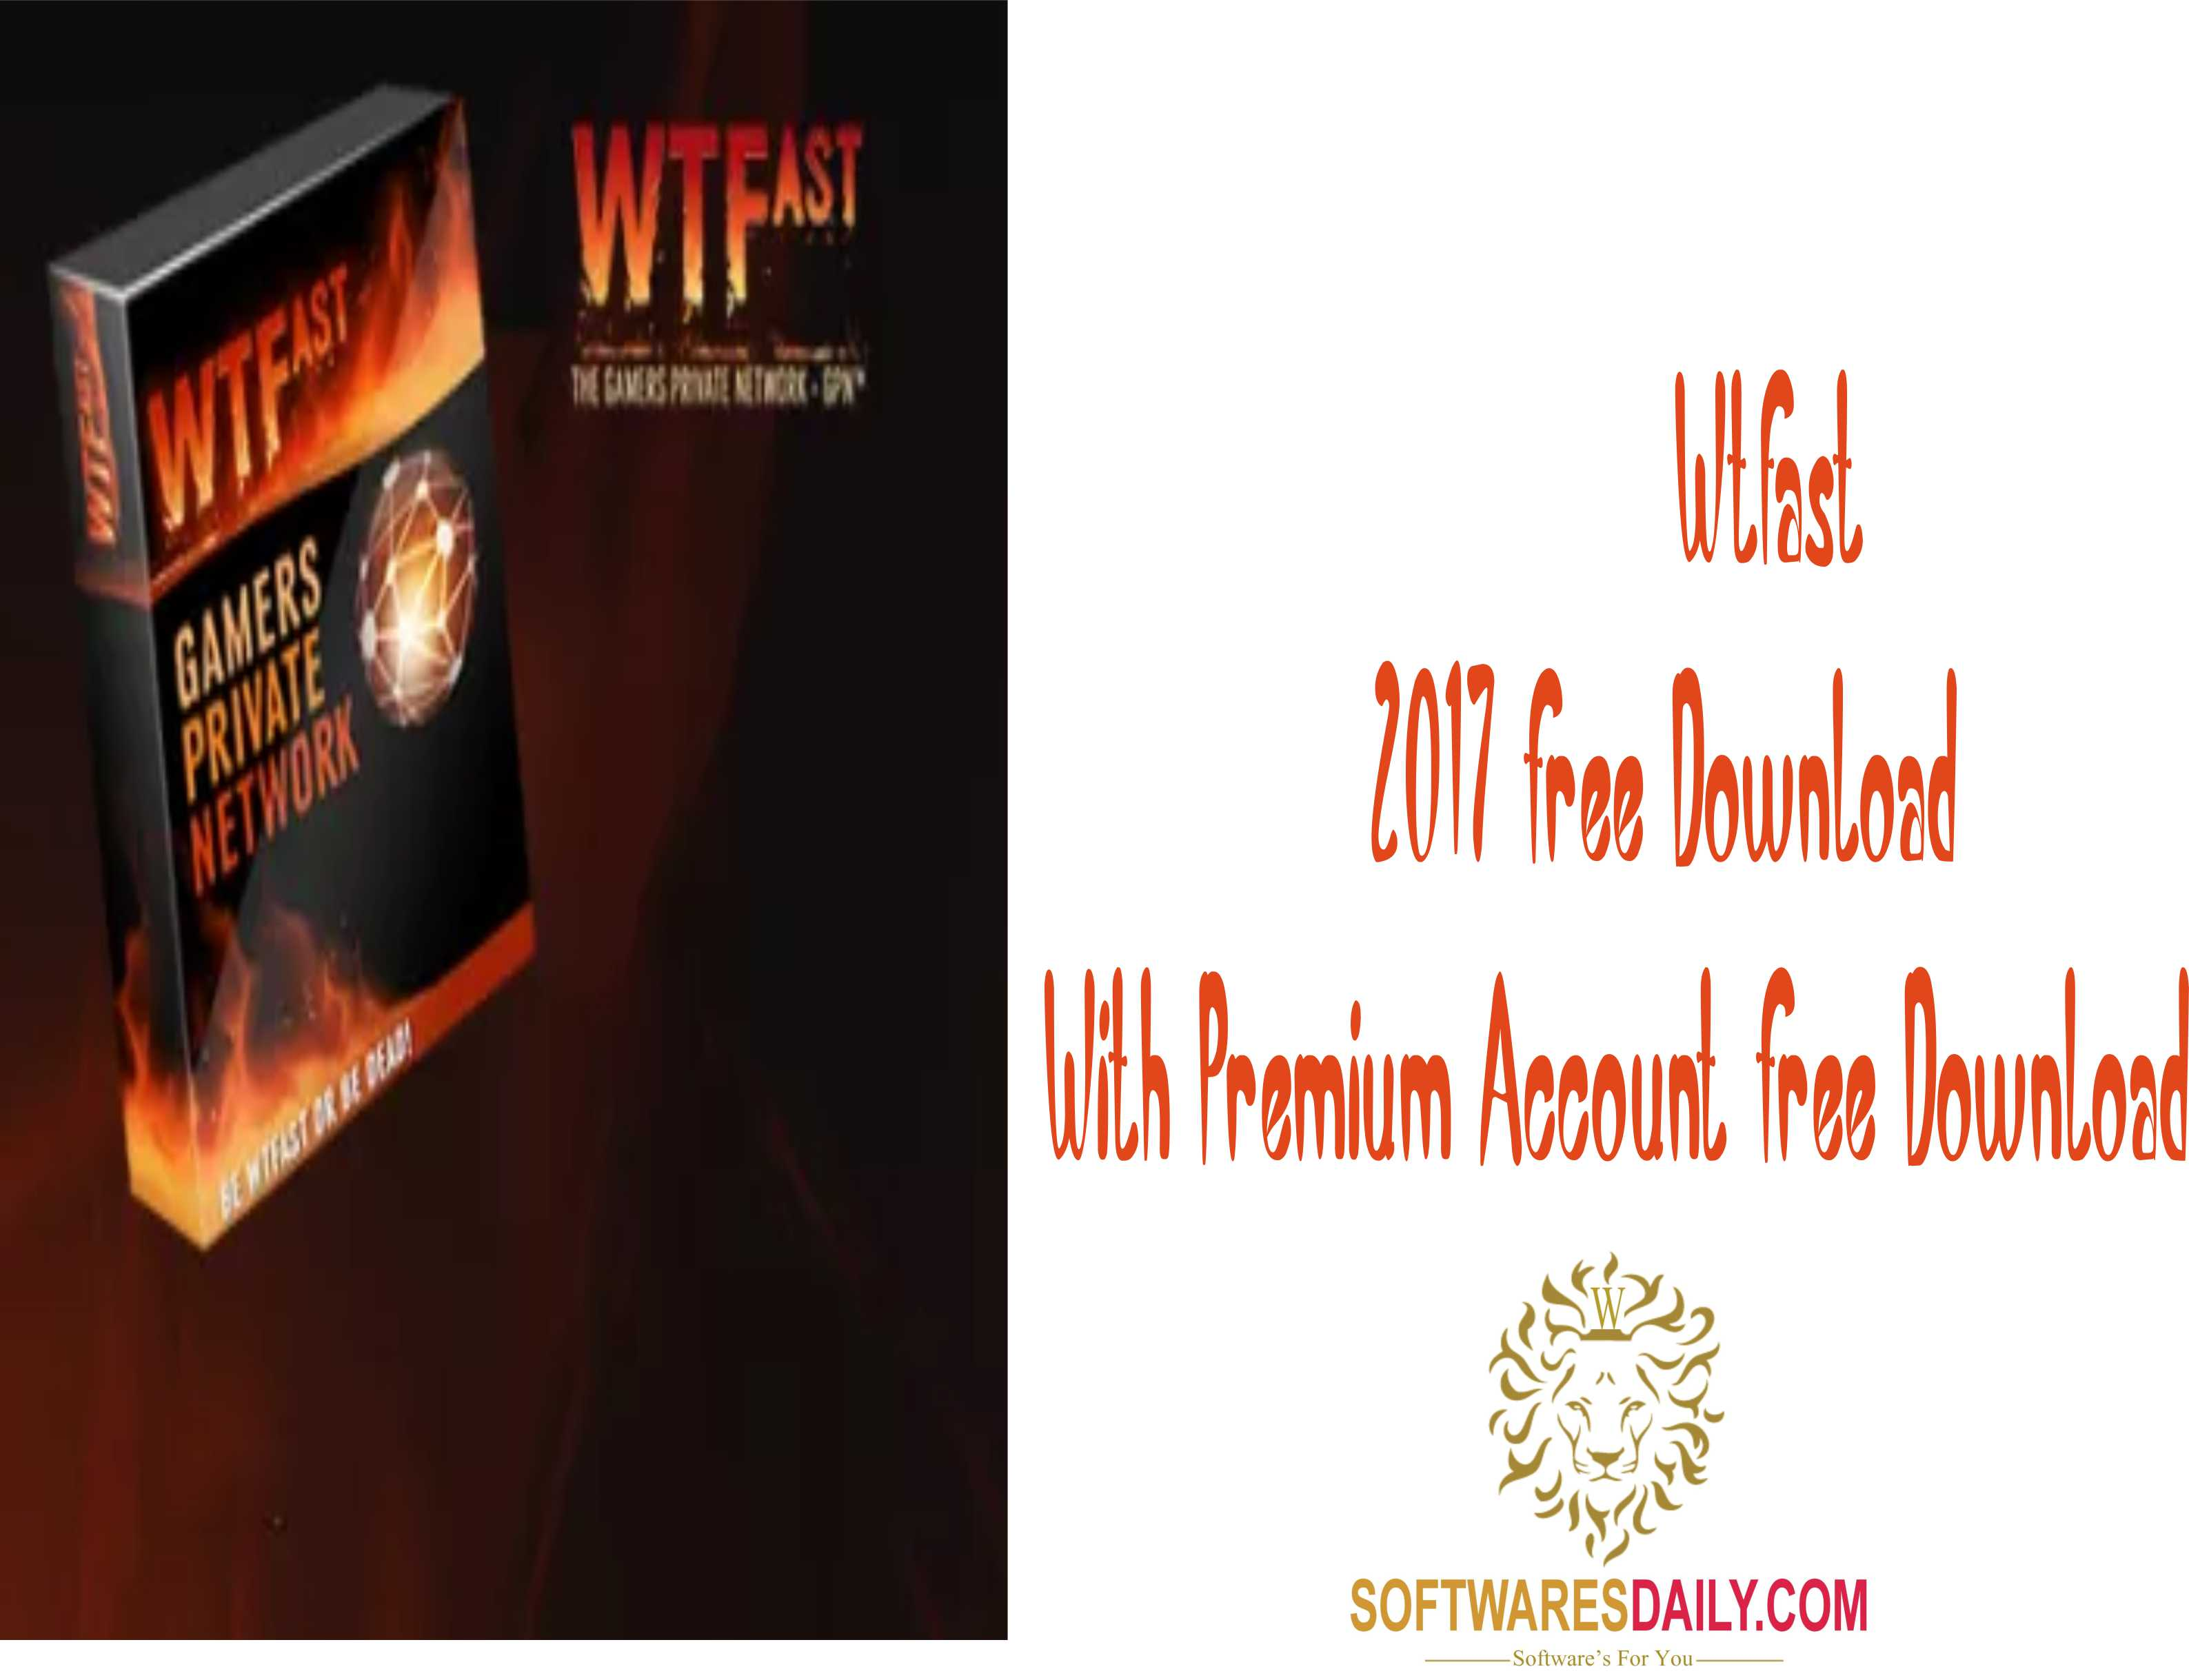 Wtfast 2017 Free Download With Premium Account Free Download